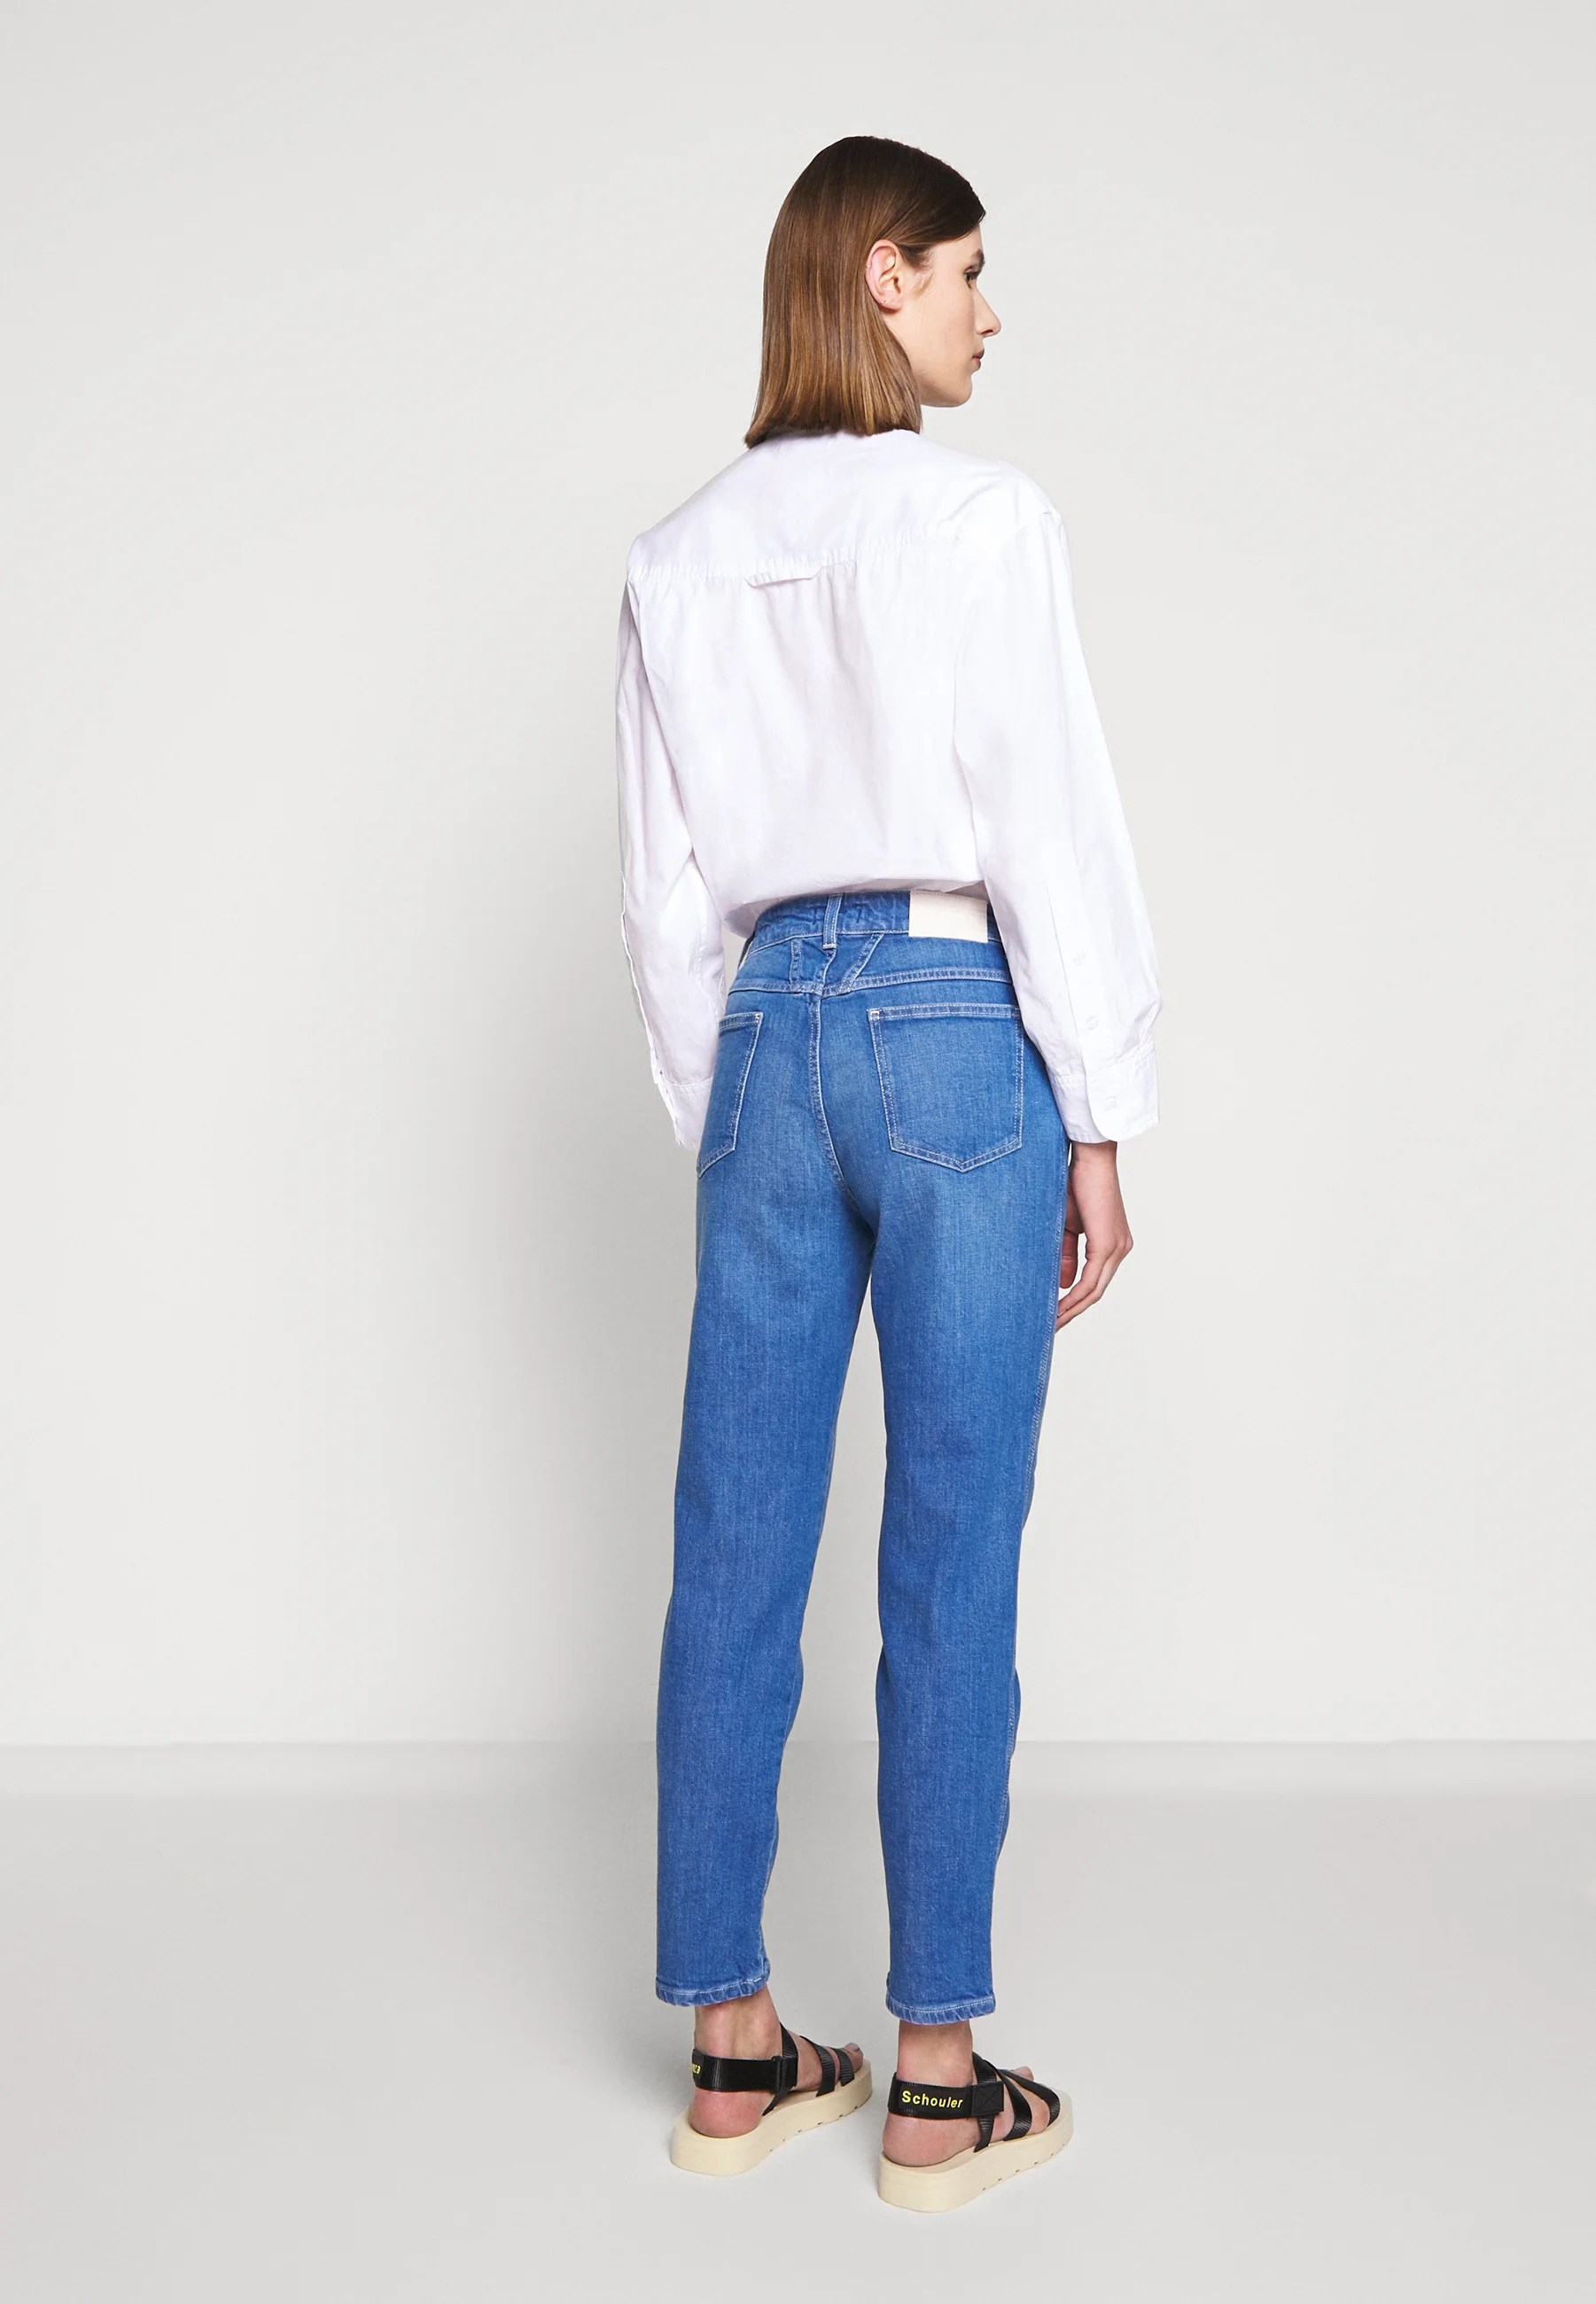 Closed Pedal Pusher High Waist Cropped Length Jeans Relaxed Fit Mid Blue Blue Denim Zalando At